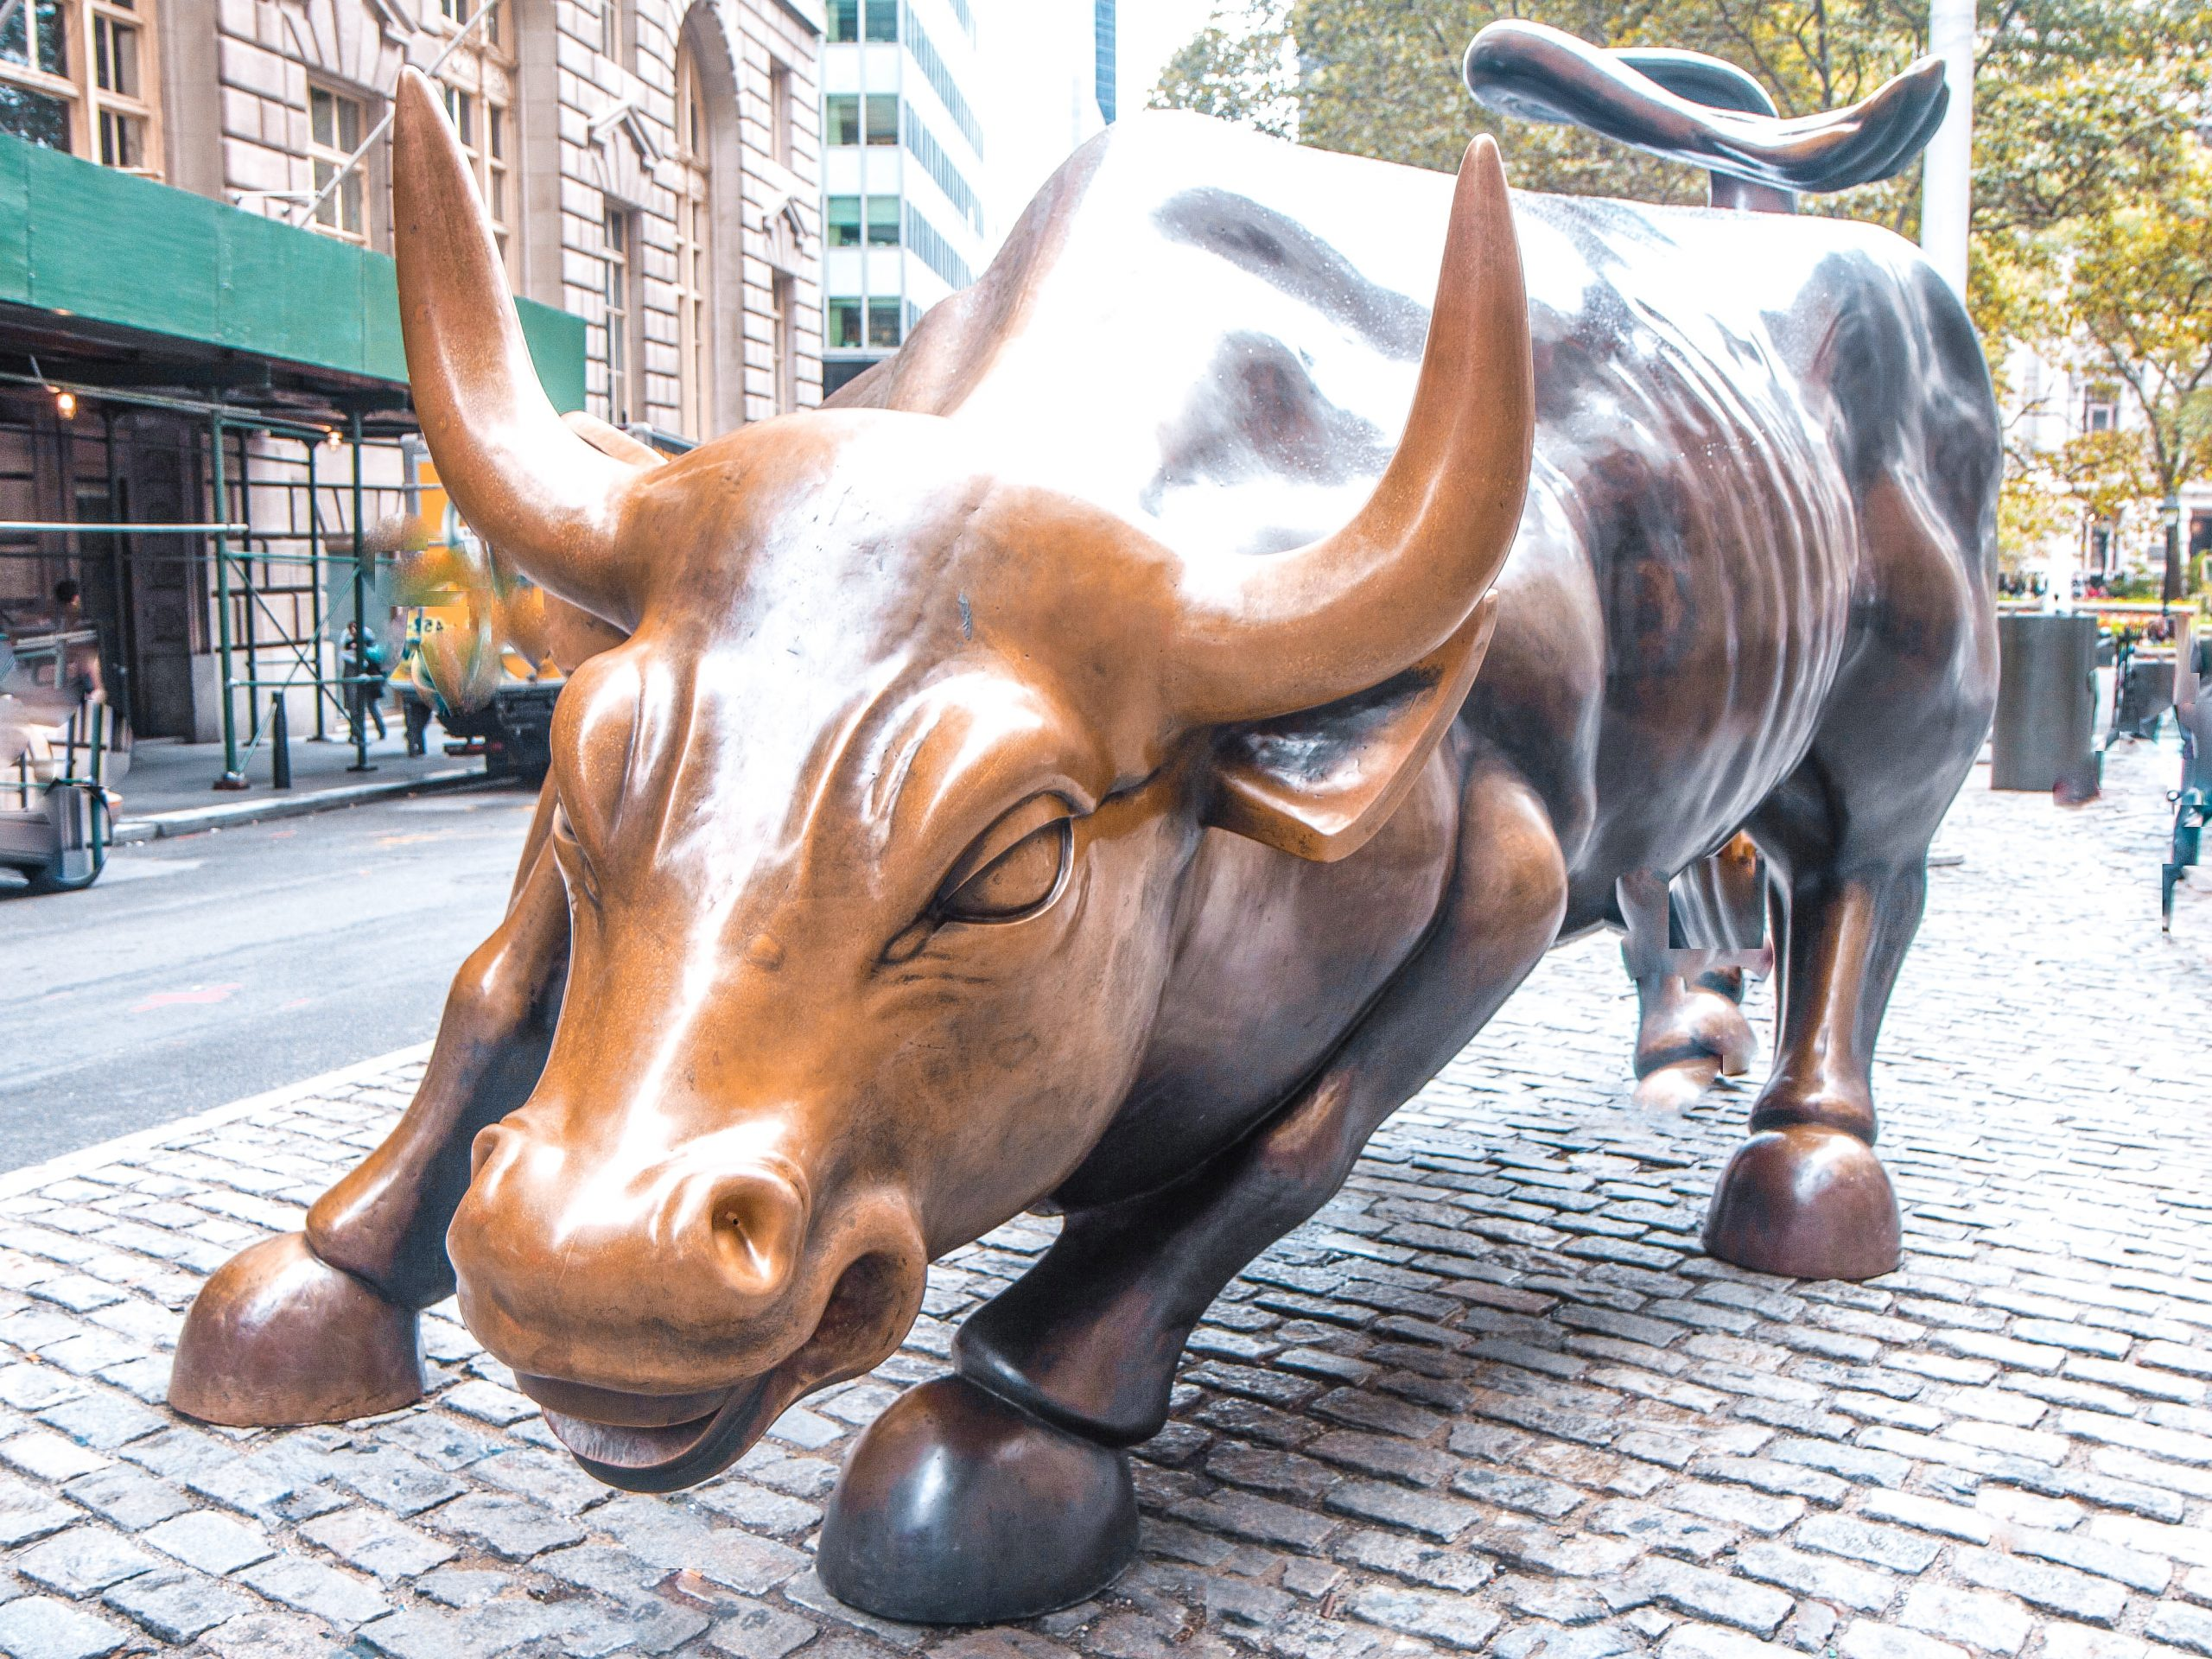 Charging Bull, New York - Giddy Guest